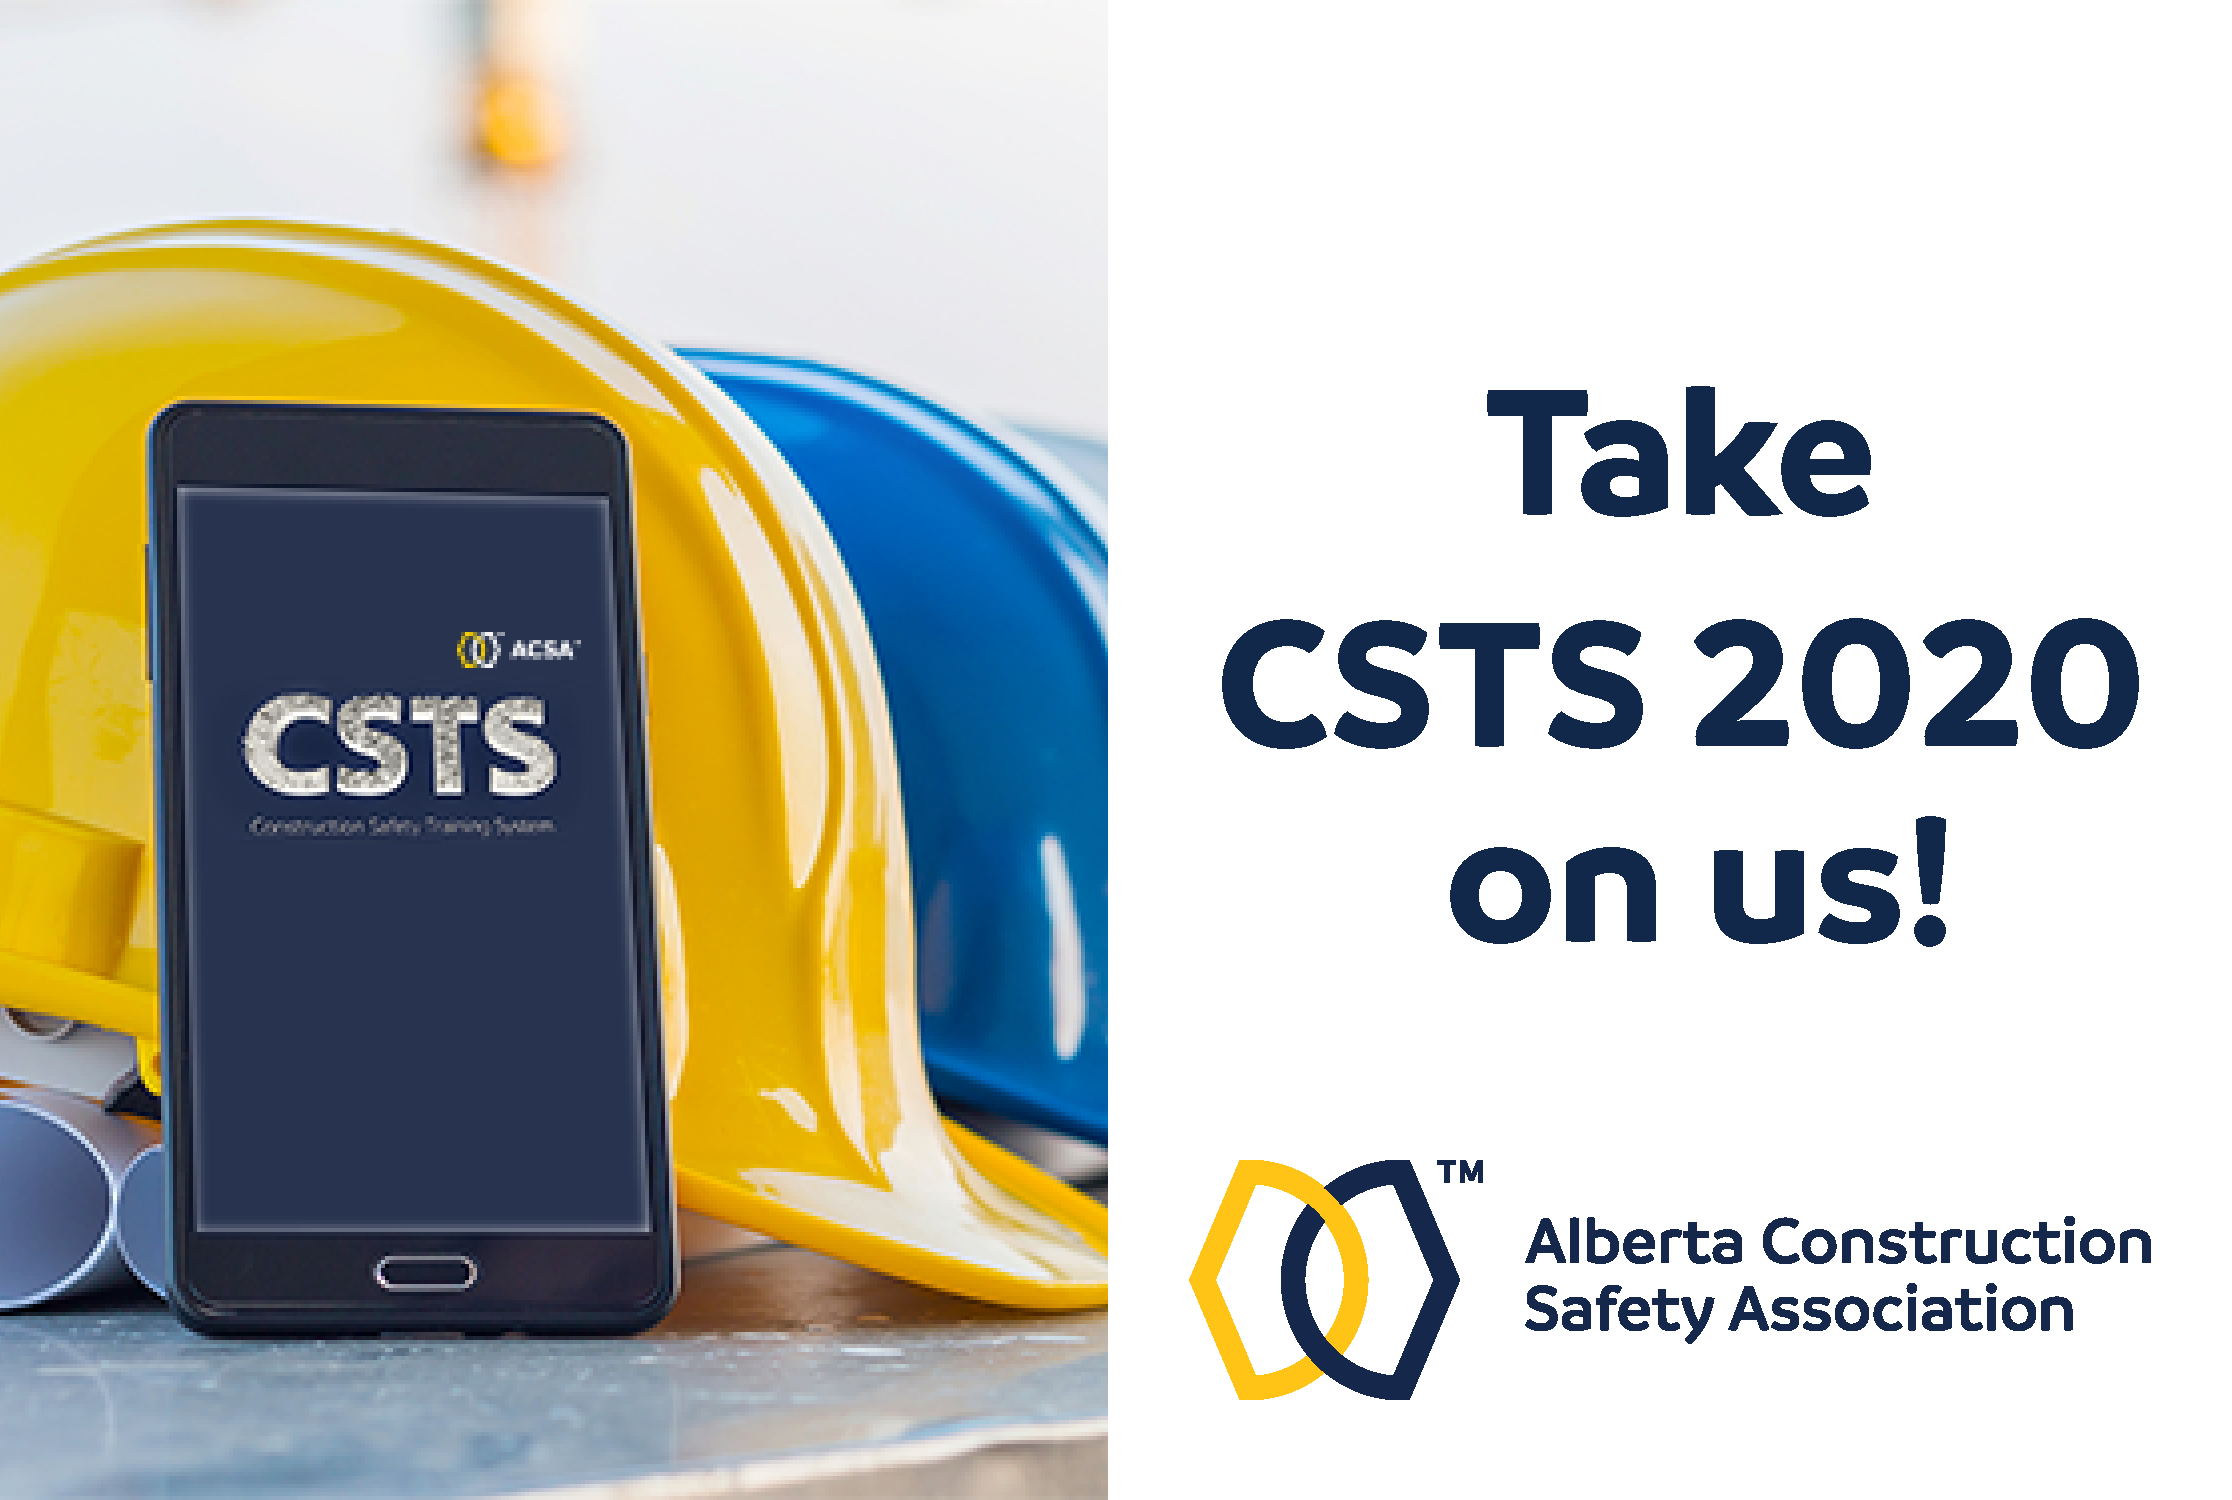 <center>Yes, you read it right. Your ACSA is offering our newly upgraded version of the <u>Construction Safety Training System (CSTS) 2020</u> for FREE until December 31, 2020. </center>